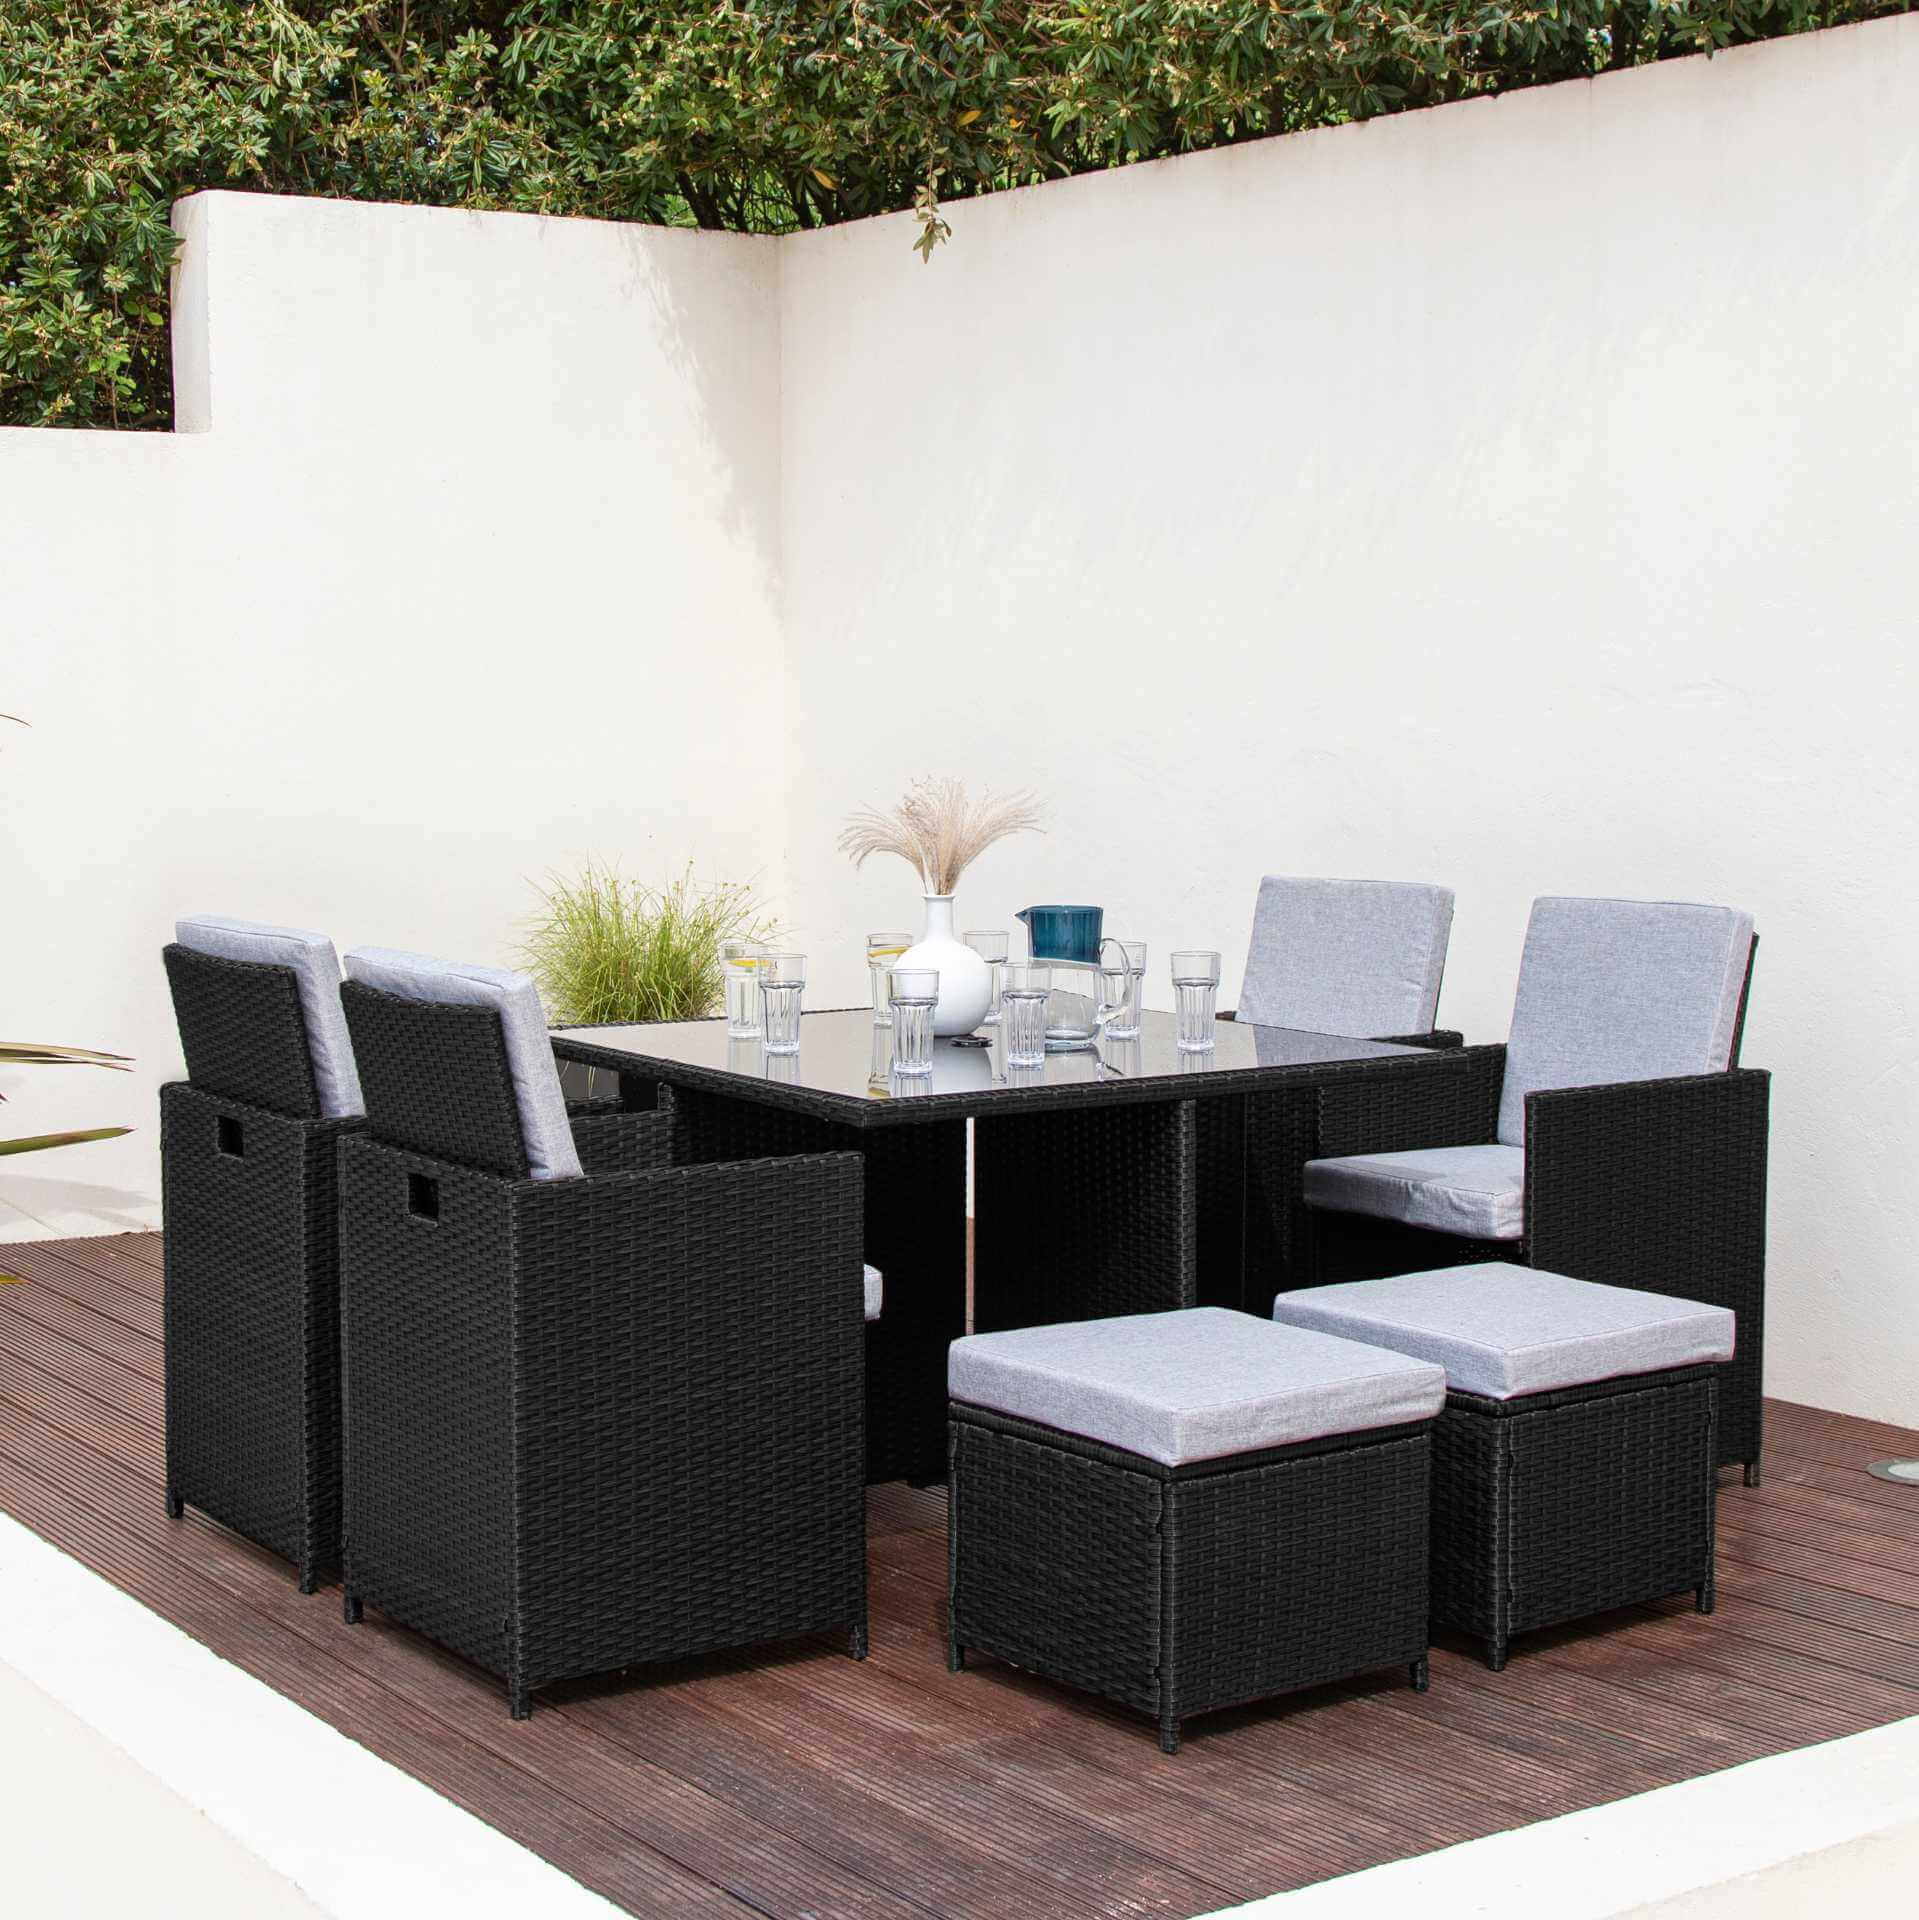 8 Seater Rattan Cube Outdoor Dining Set - Black Weave